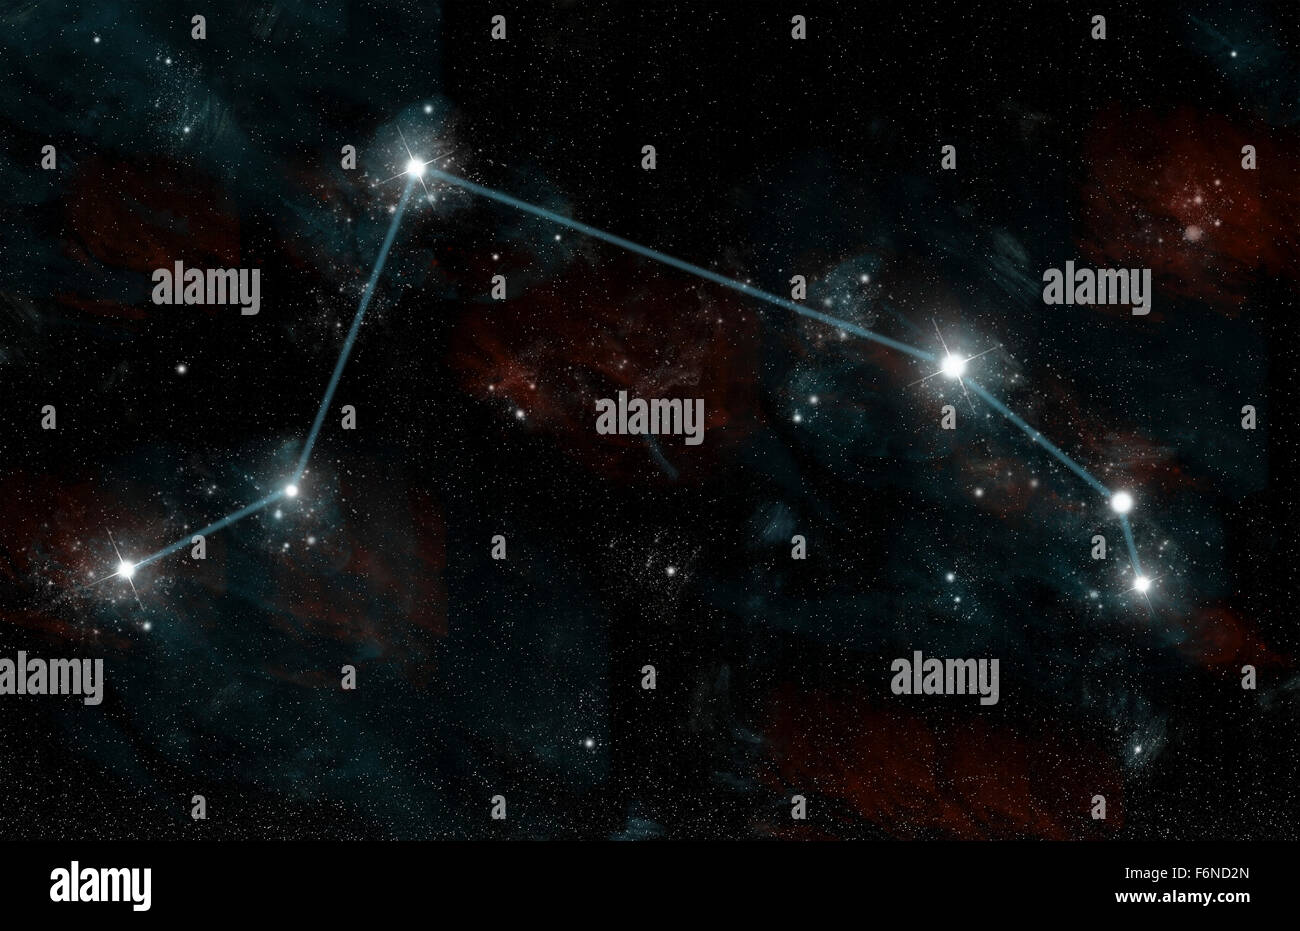 Aries constellation in the sky. What does the constellation Aries look like? 68